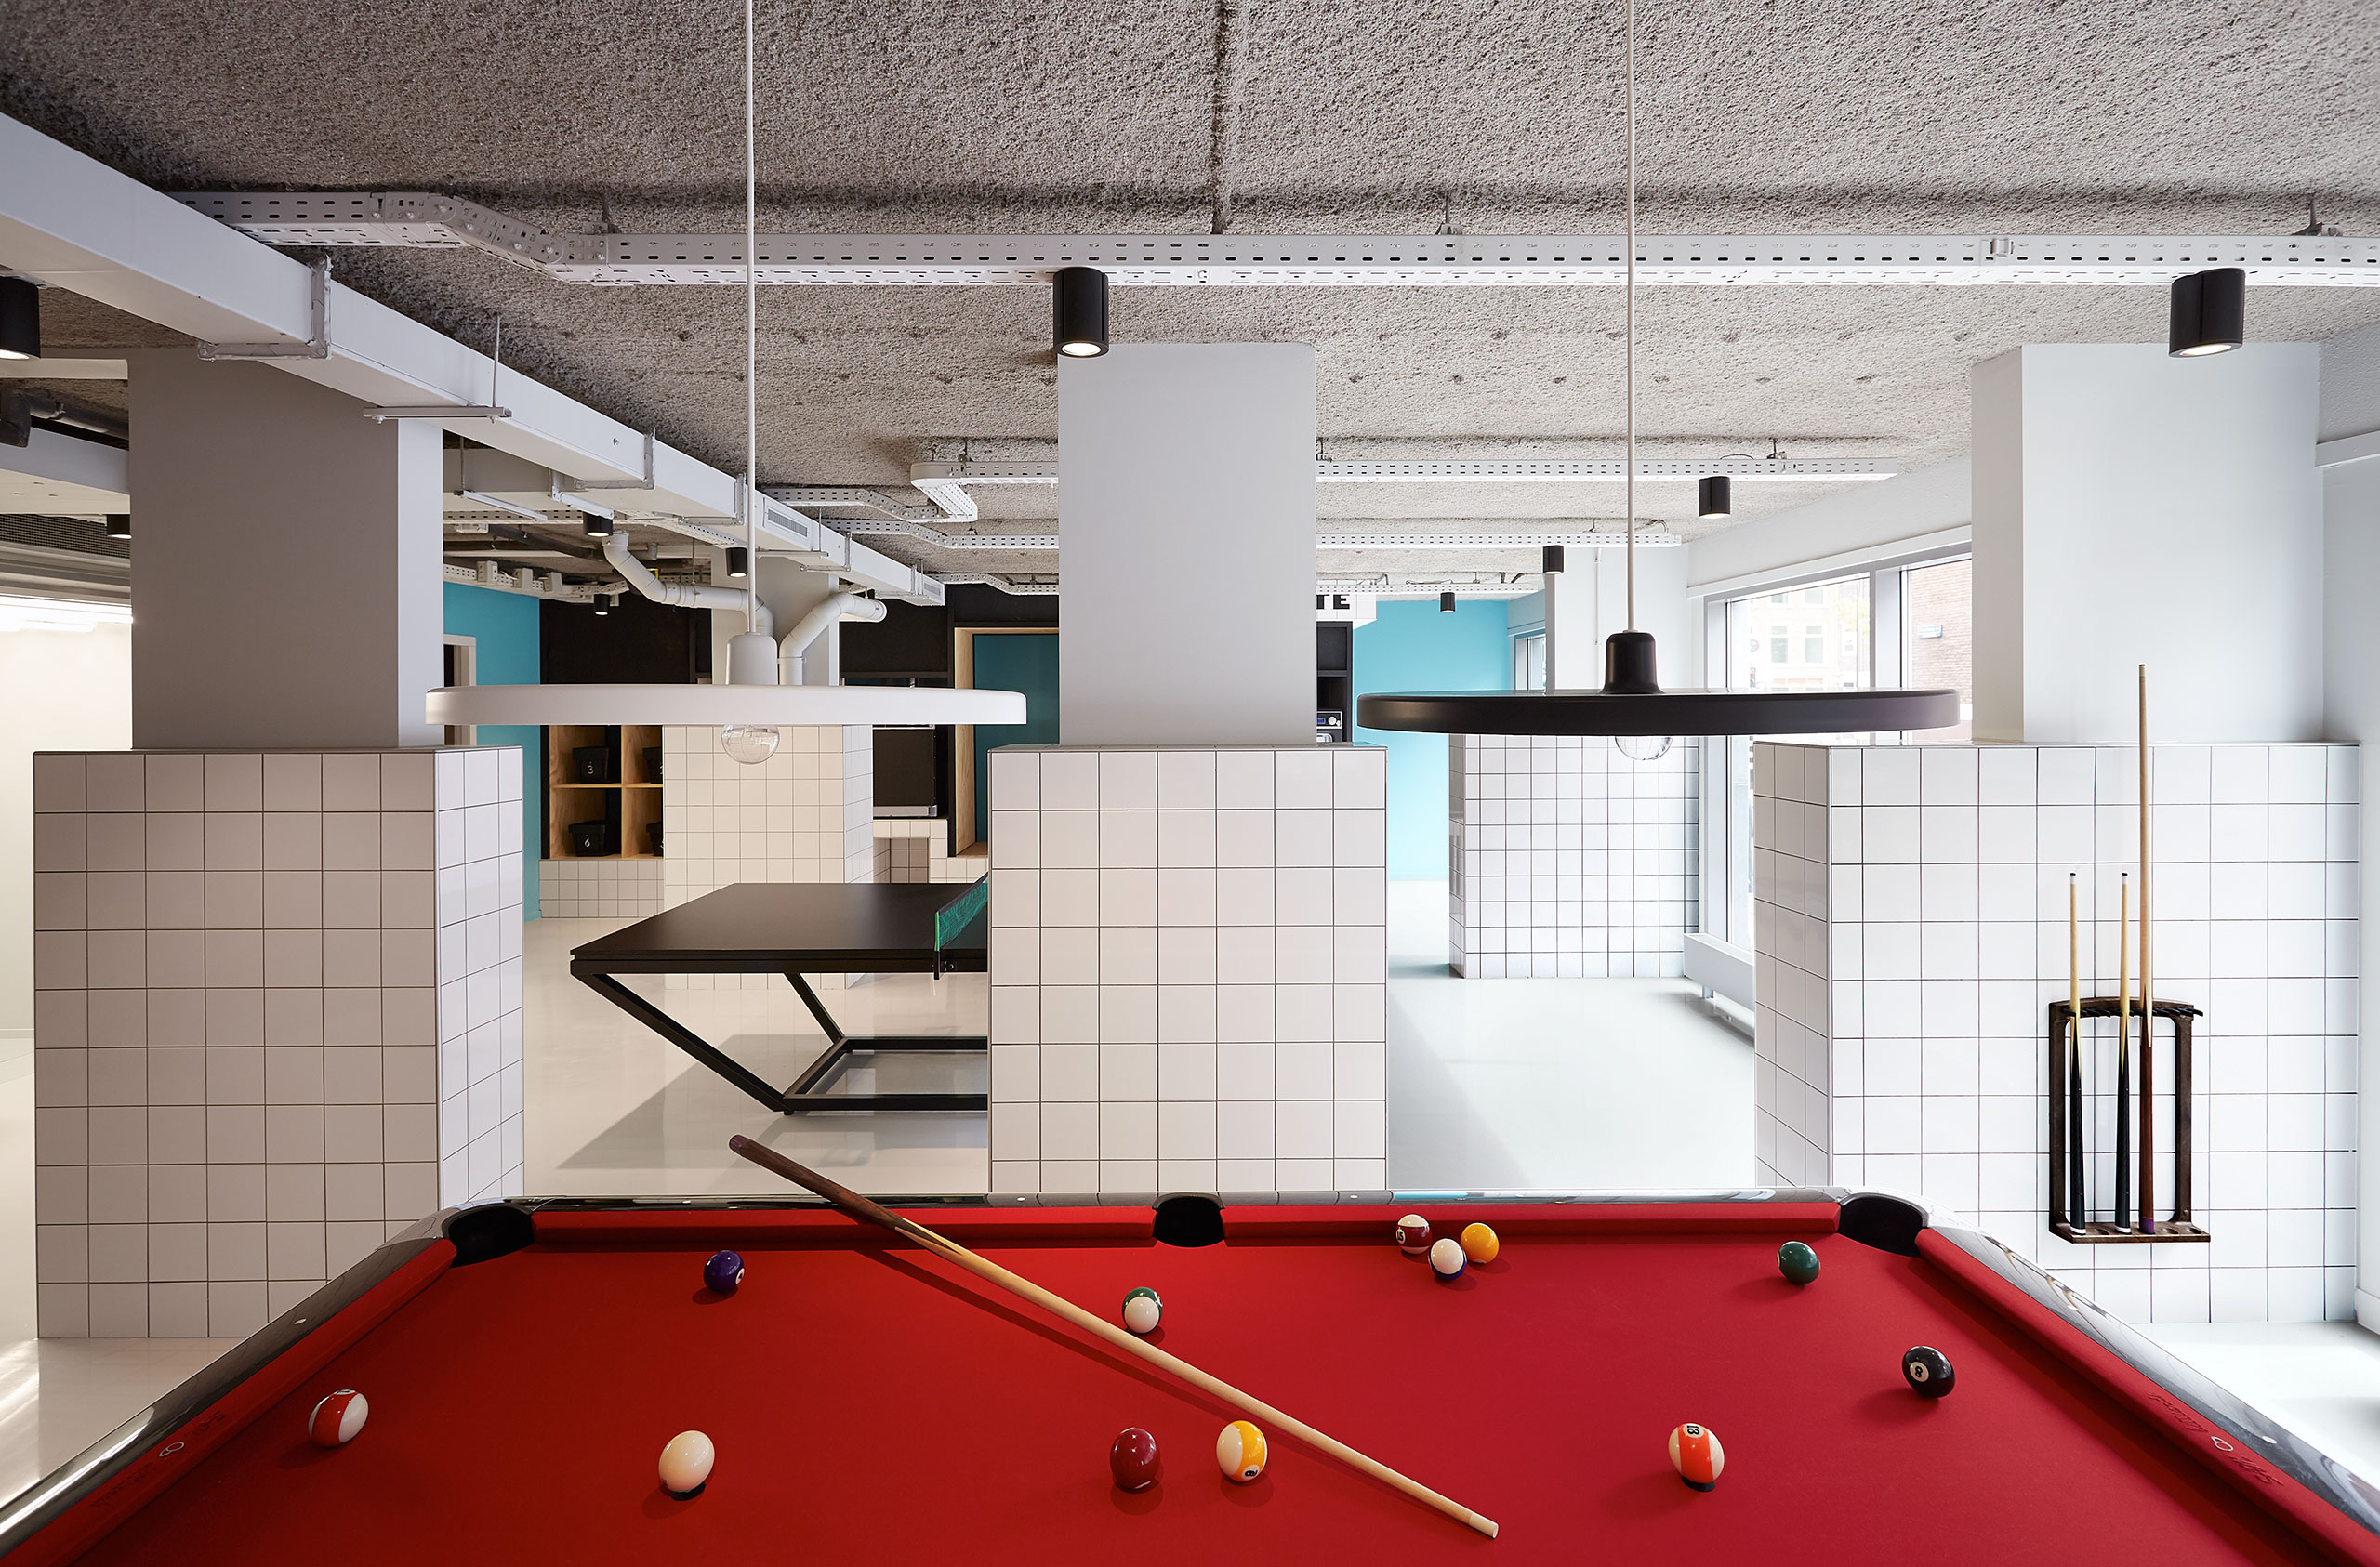 https://www.yatzer.com/sites/default/files/media/slideshow/p8_the_student_hotel_amsterdam_city_yatzer.jpg